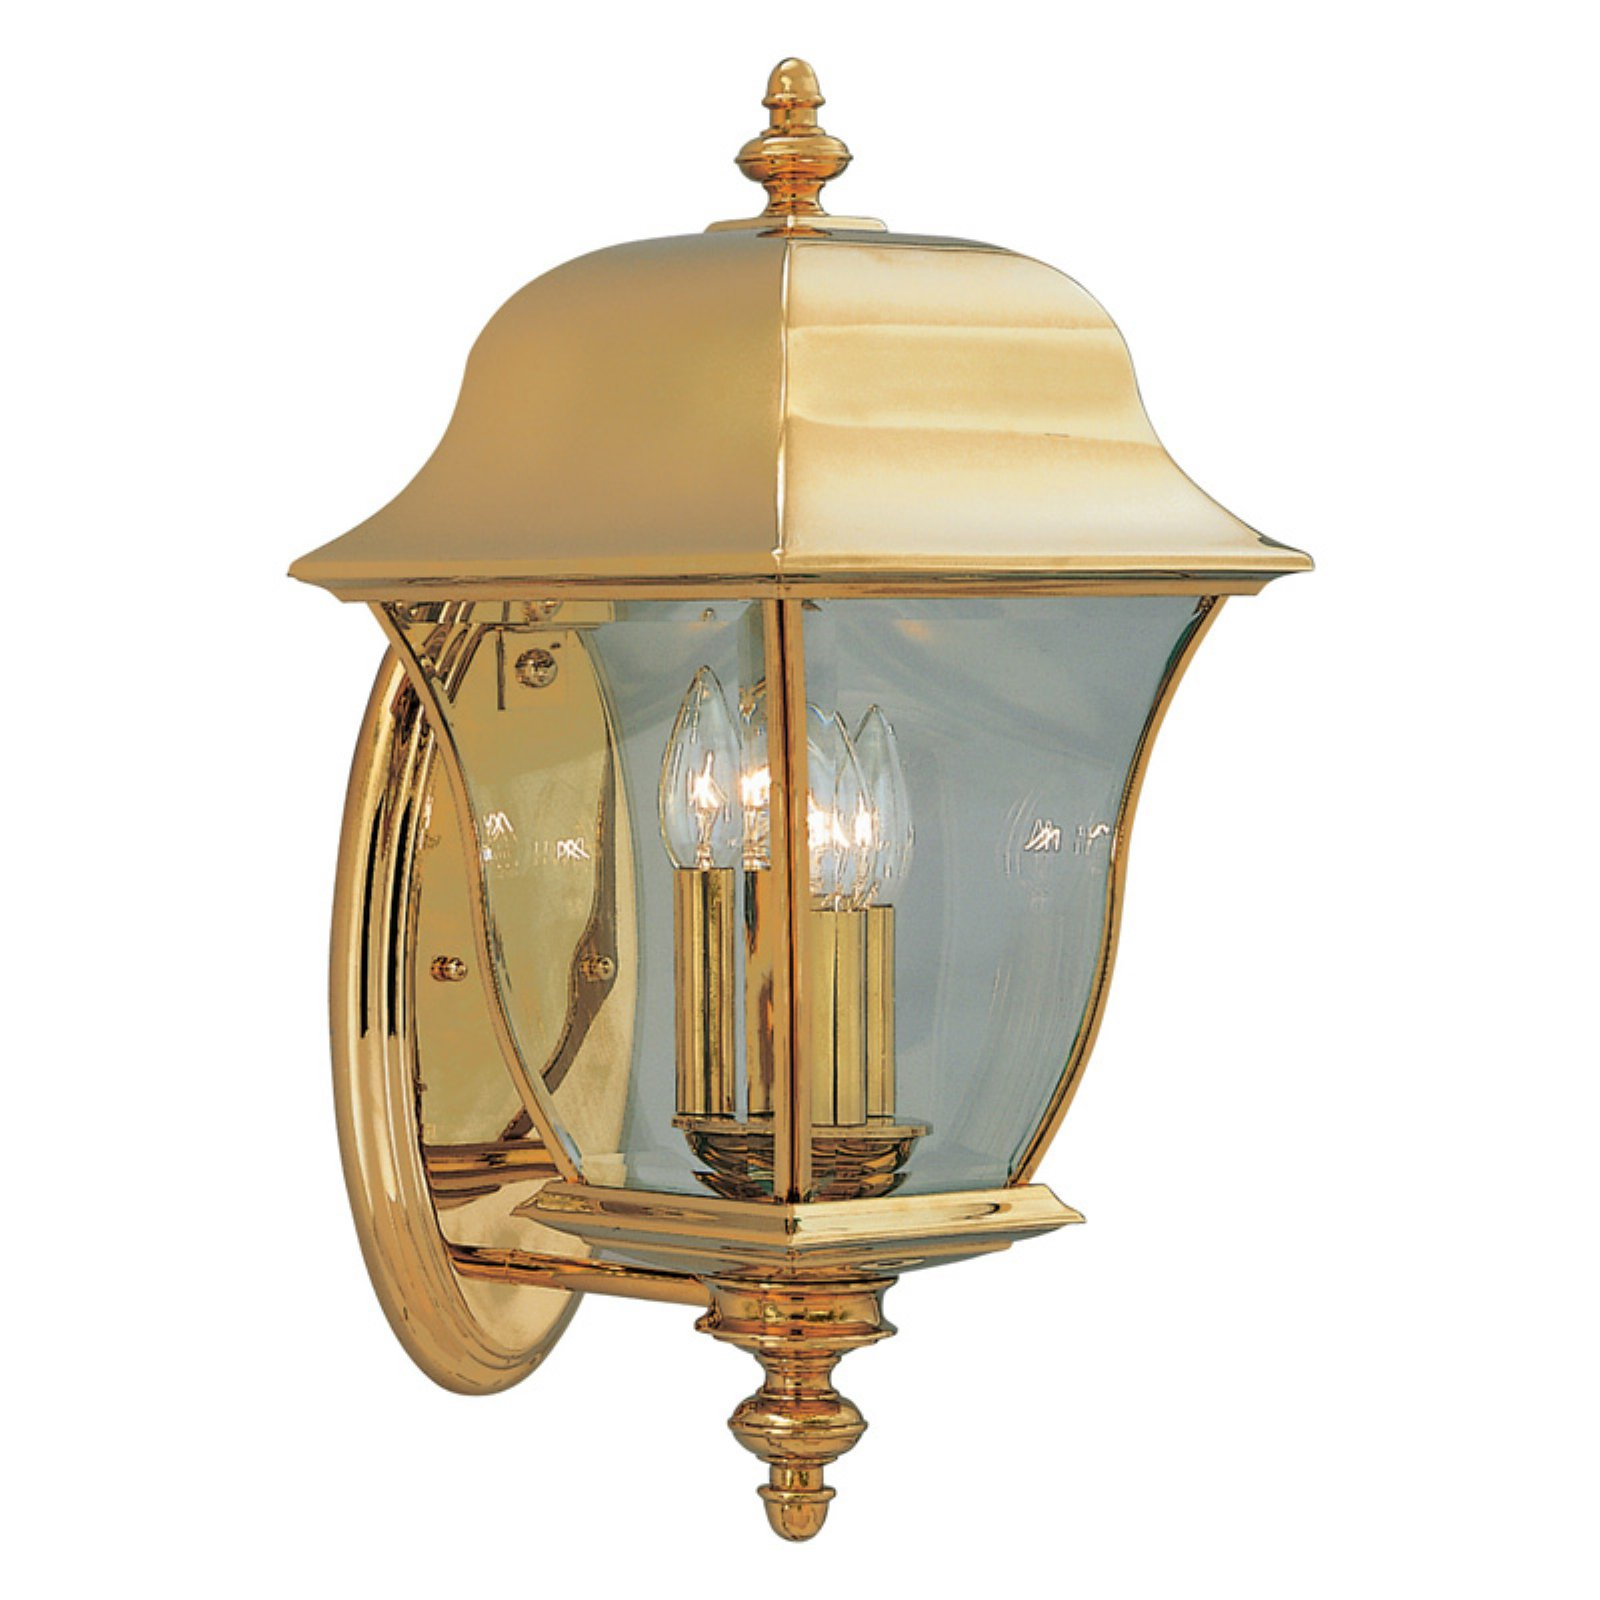 Designers Fountain Outdoor 1552-PVD-PB Gladiator Solid Brass Wall Lantern